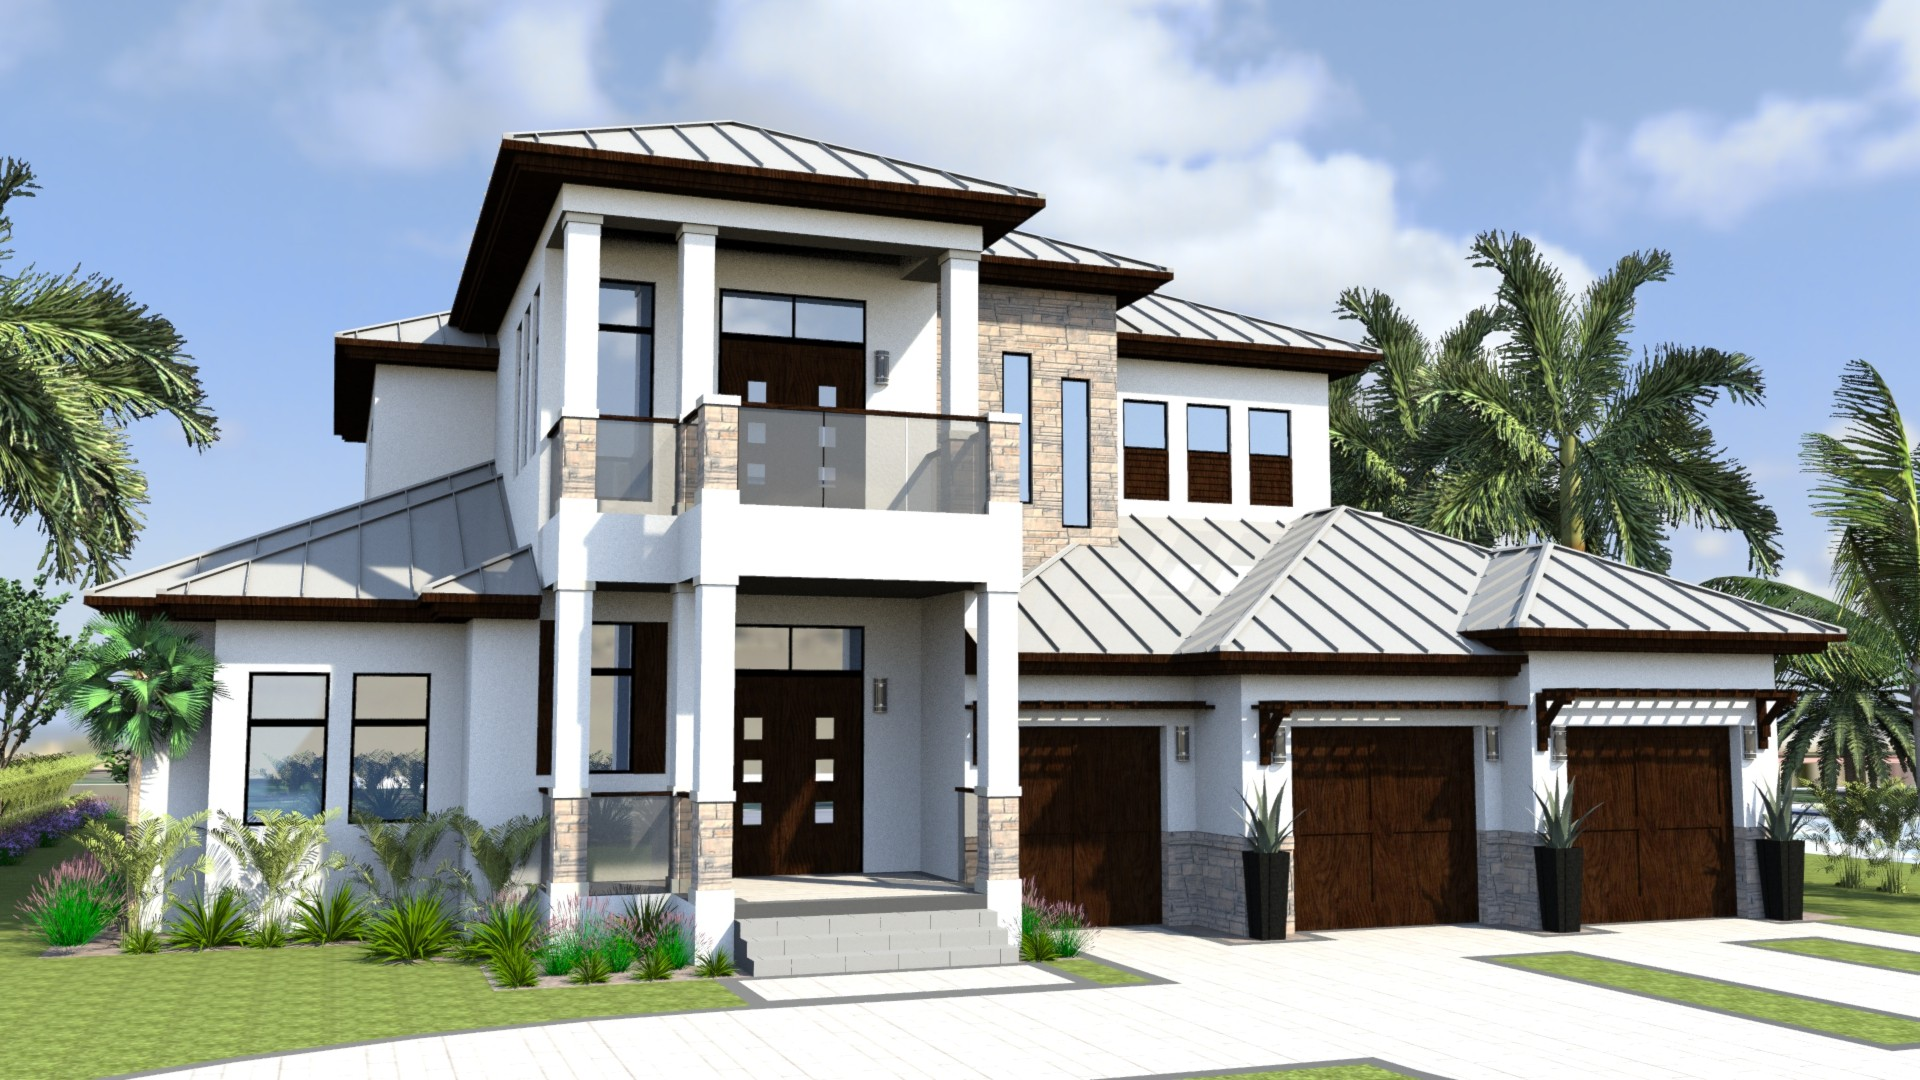 Florida house plans florida house plans professional builder house plans marsh harbour house for Florida home designs